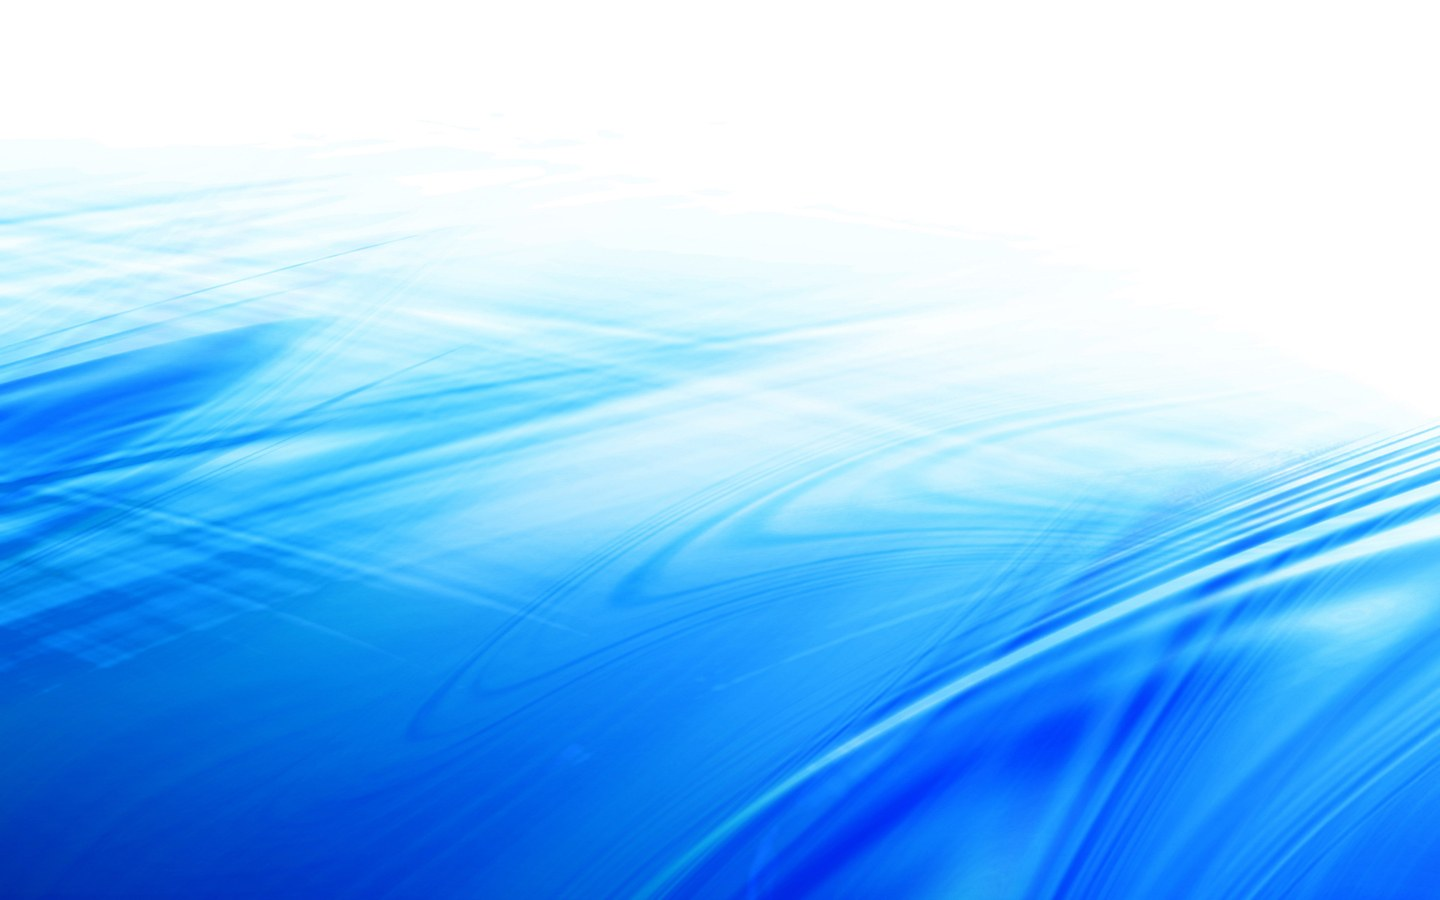 Blue Abstract Images